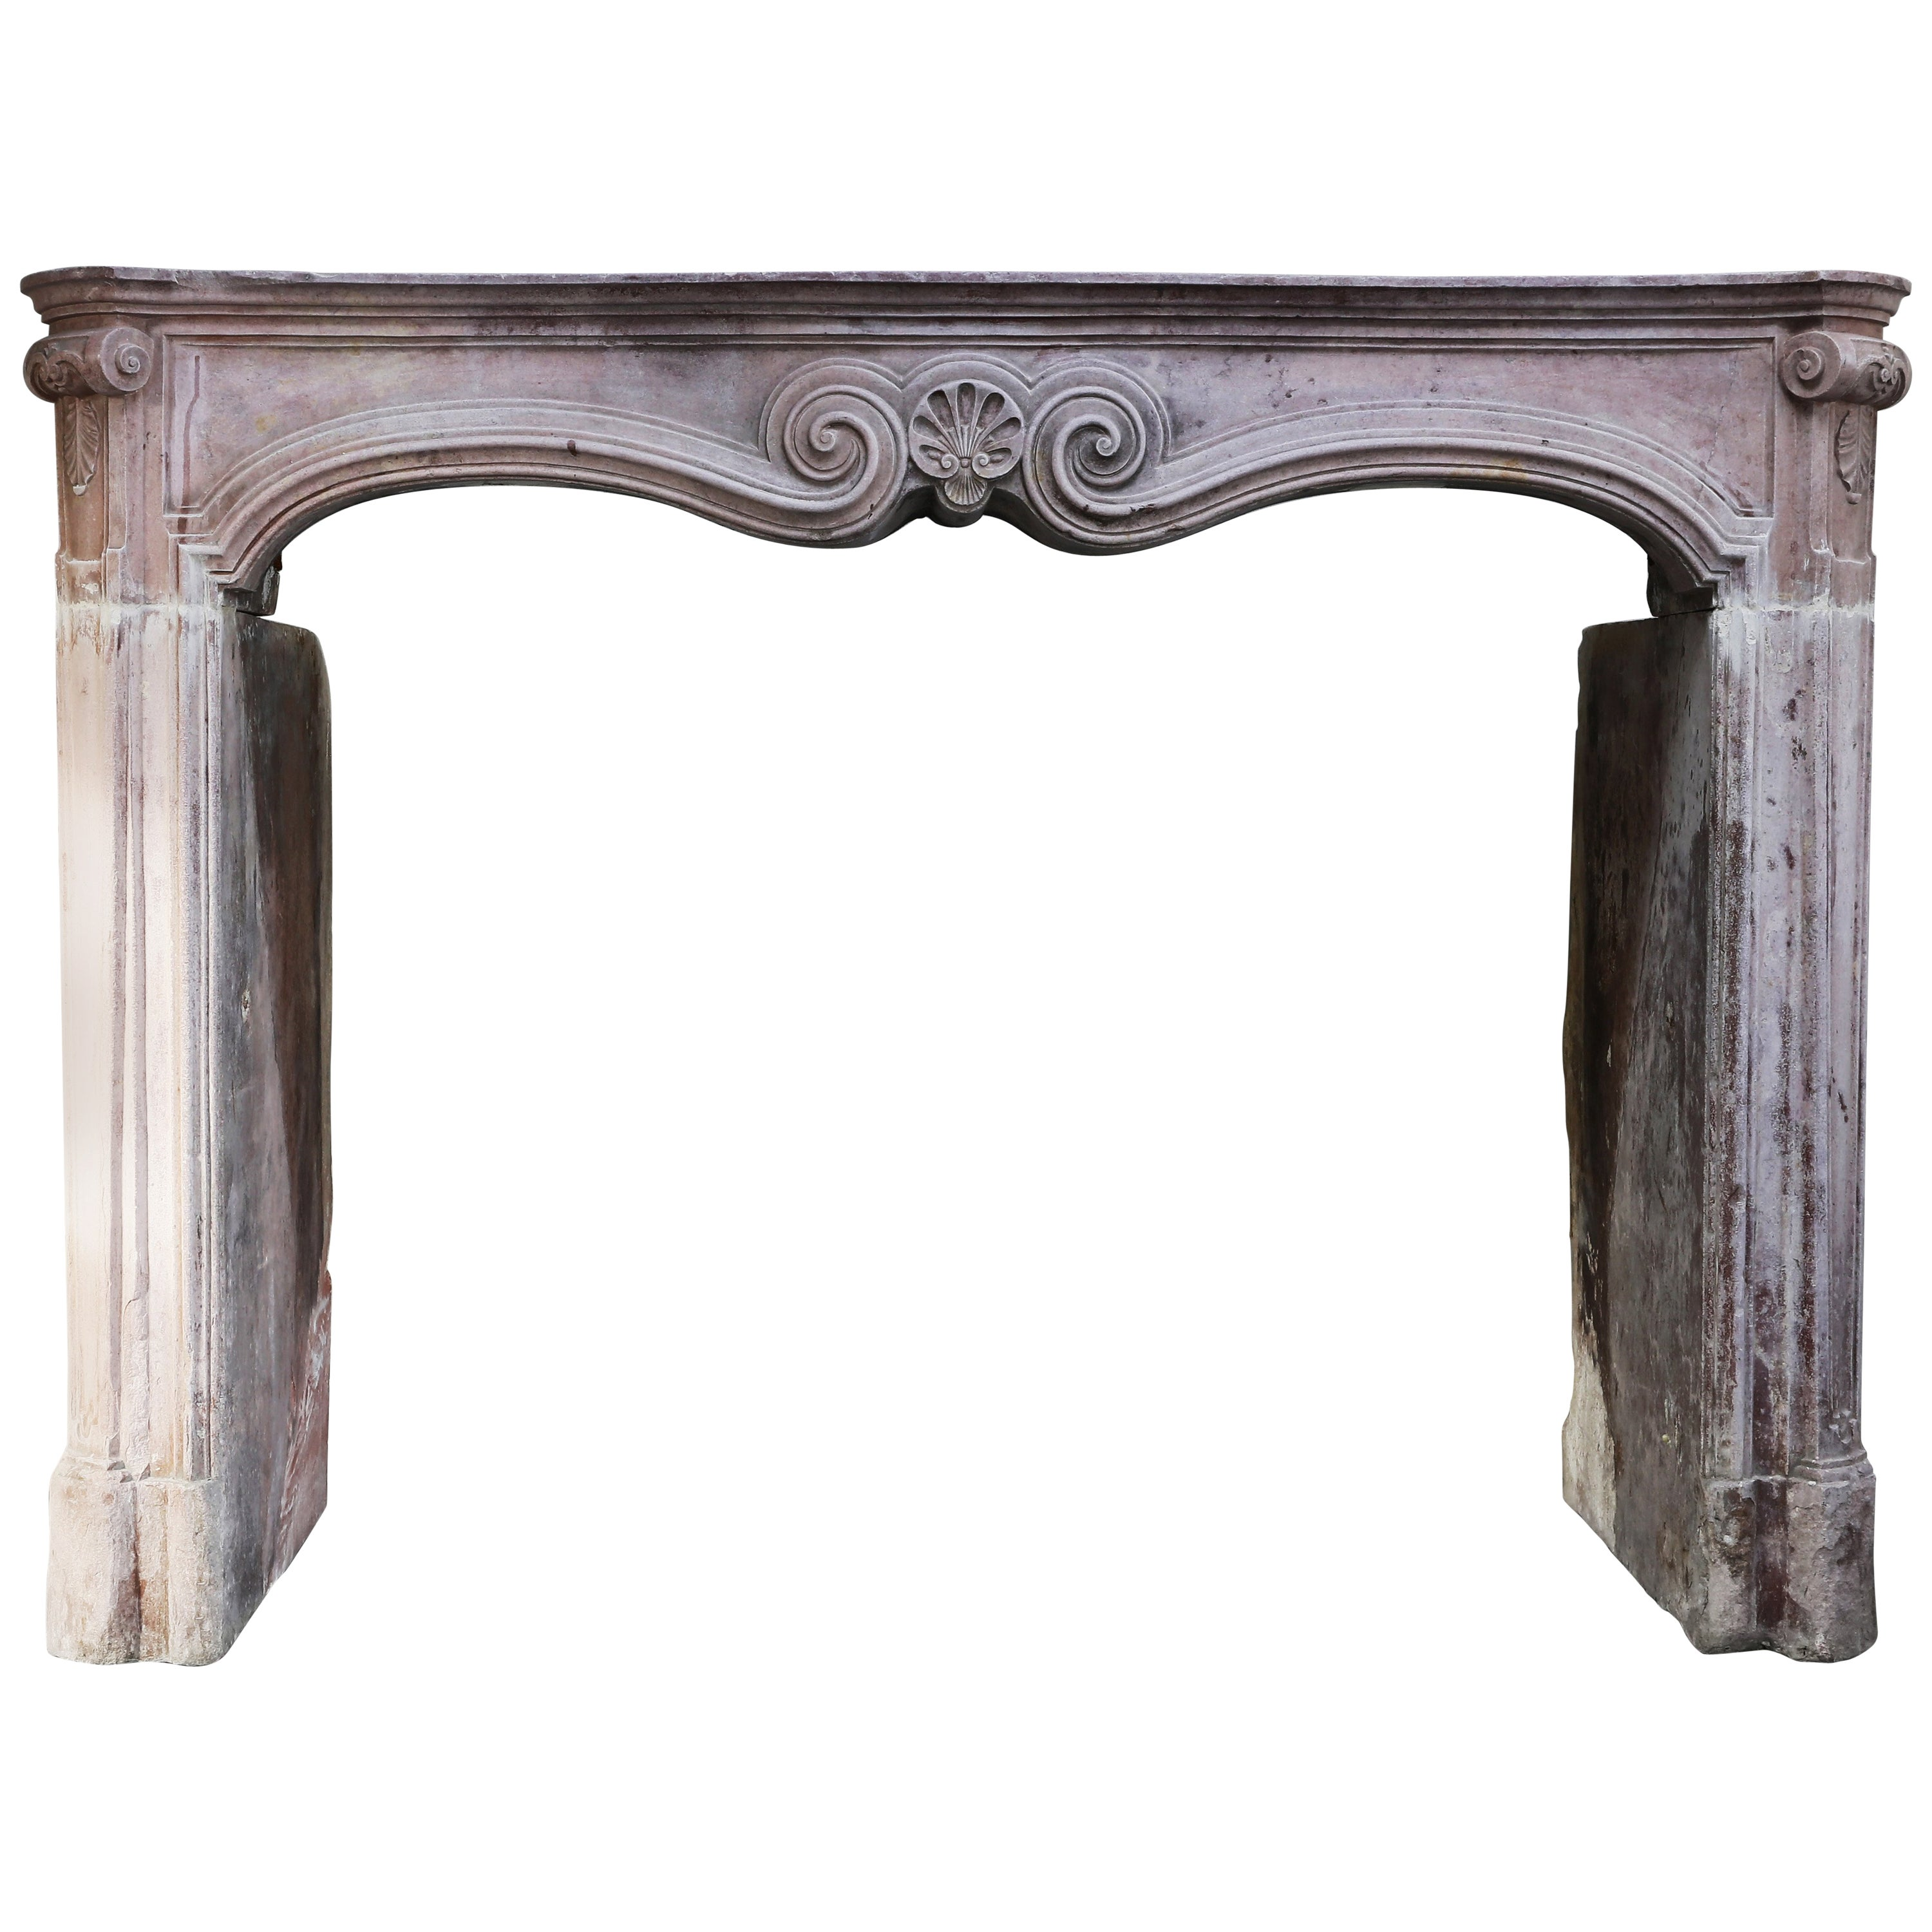 Antique Mantel of Marble Stone, Style Louis XV, 19th Century